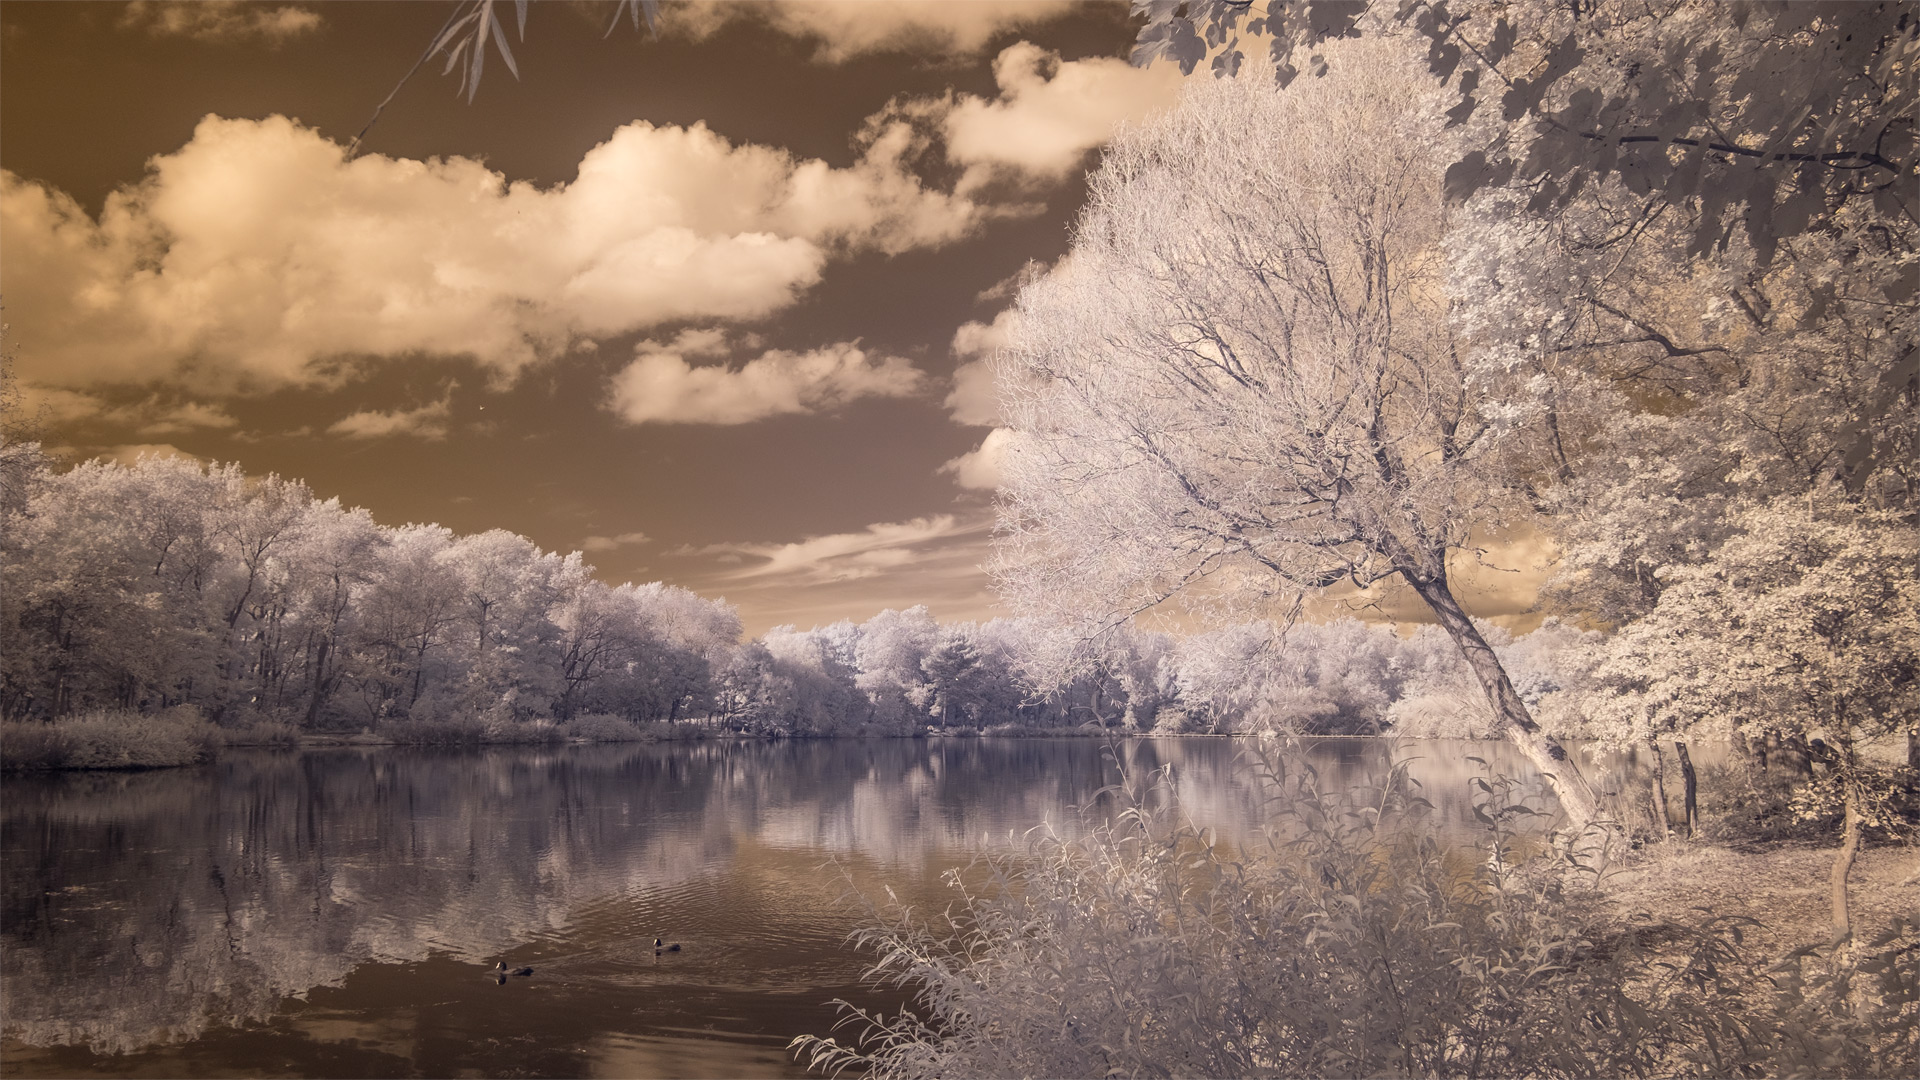 Stanley Park (infrared) / Show the Original, Infrared, Fujinon XF 16-55mm f/2.8, Fujifilm X-E2 [stanely park infrared o]